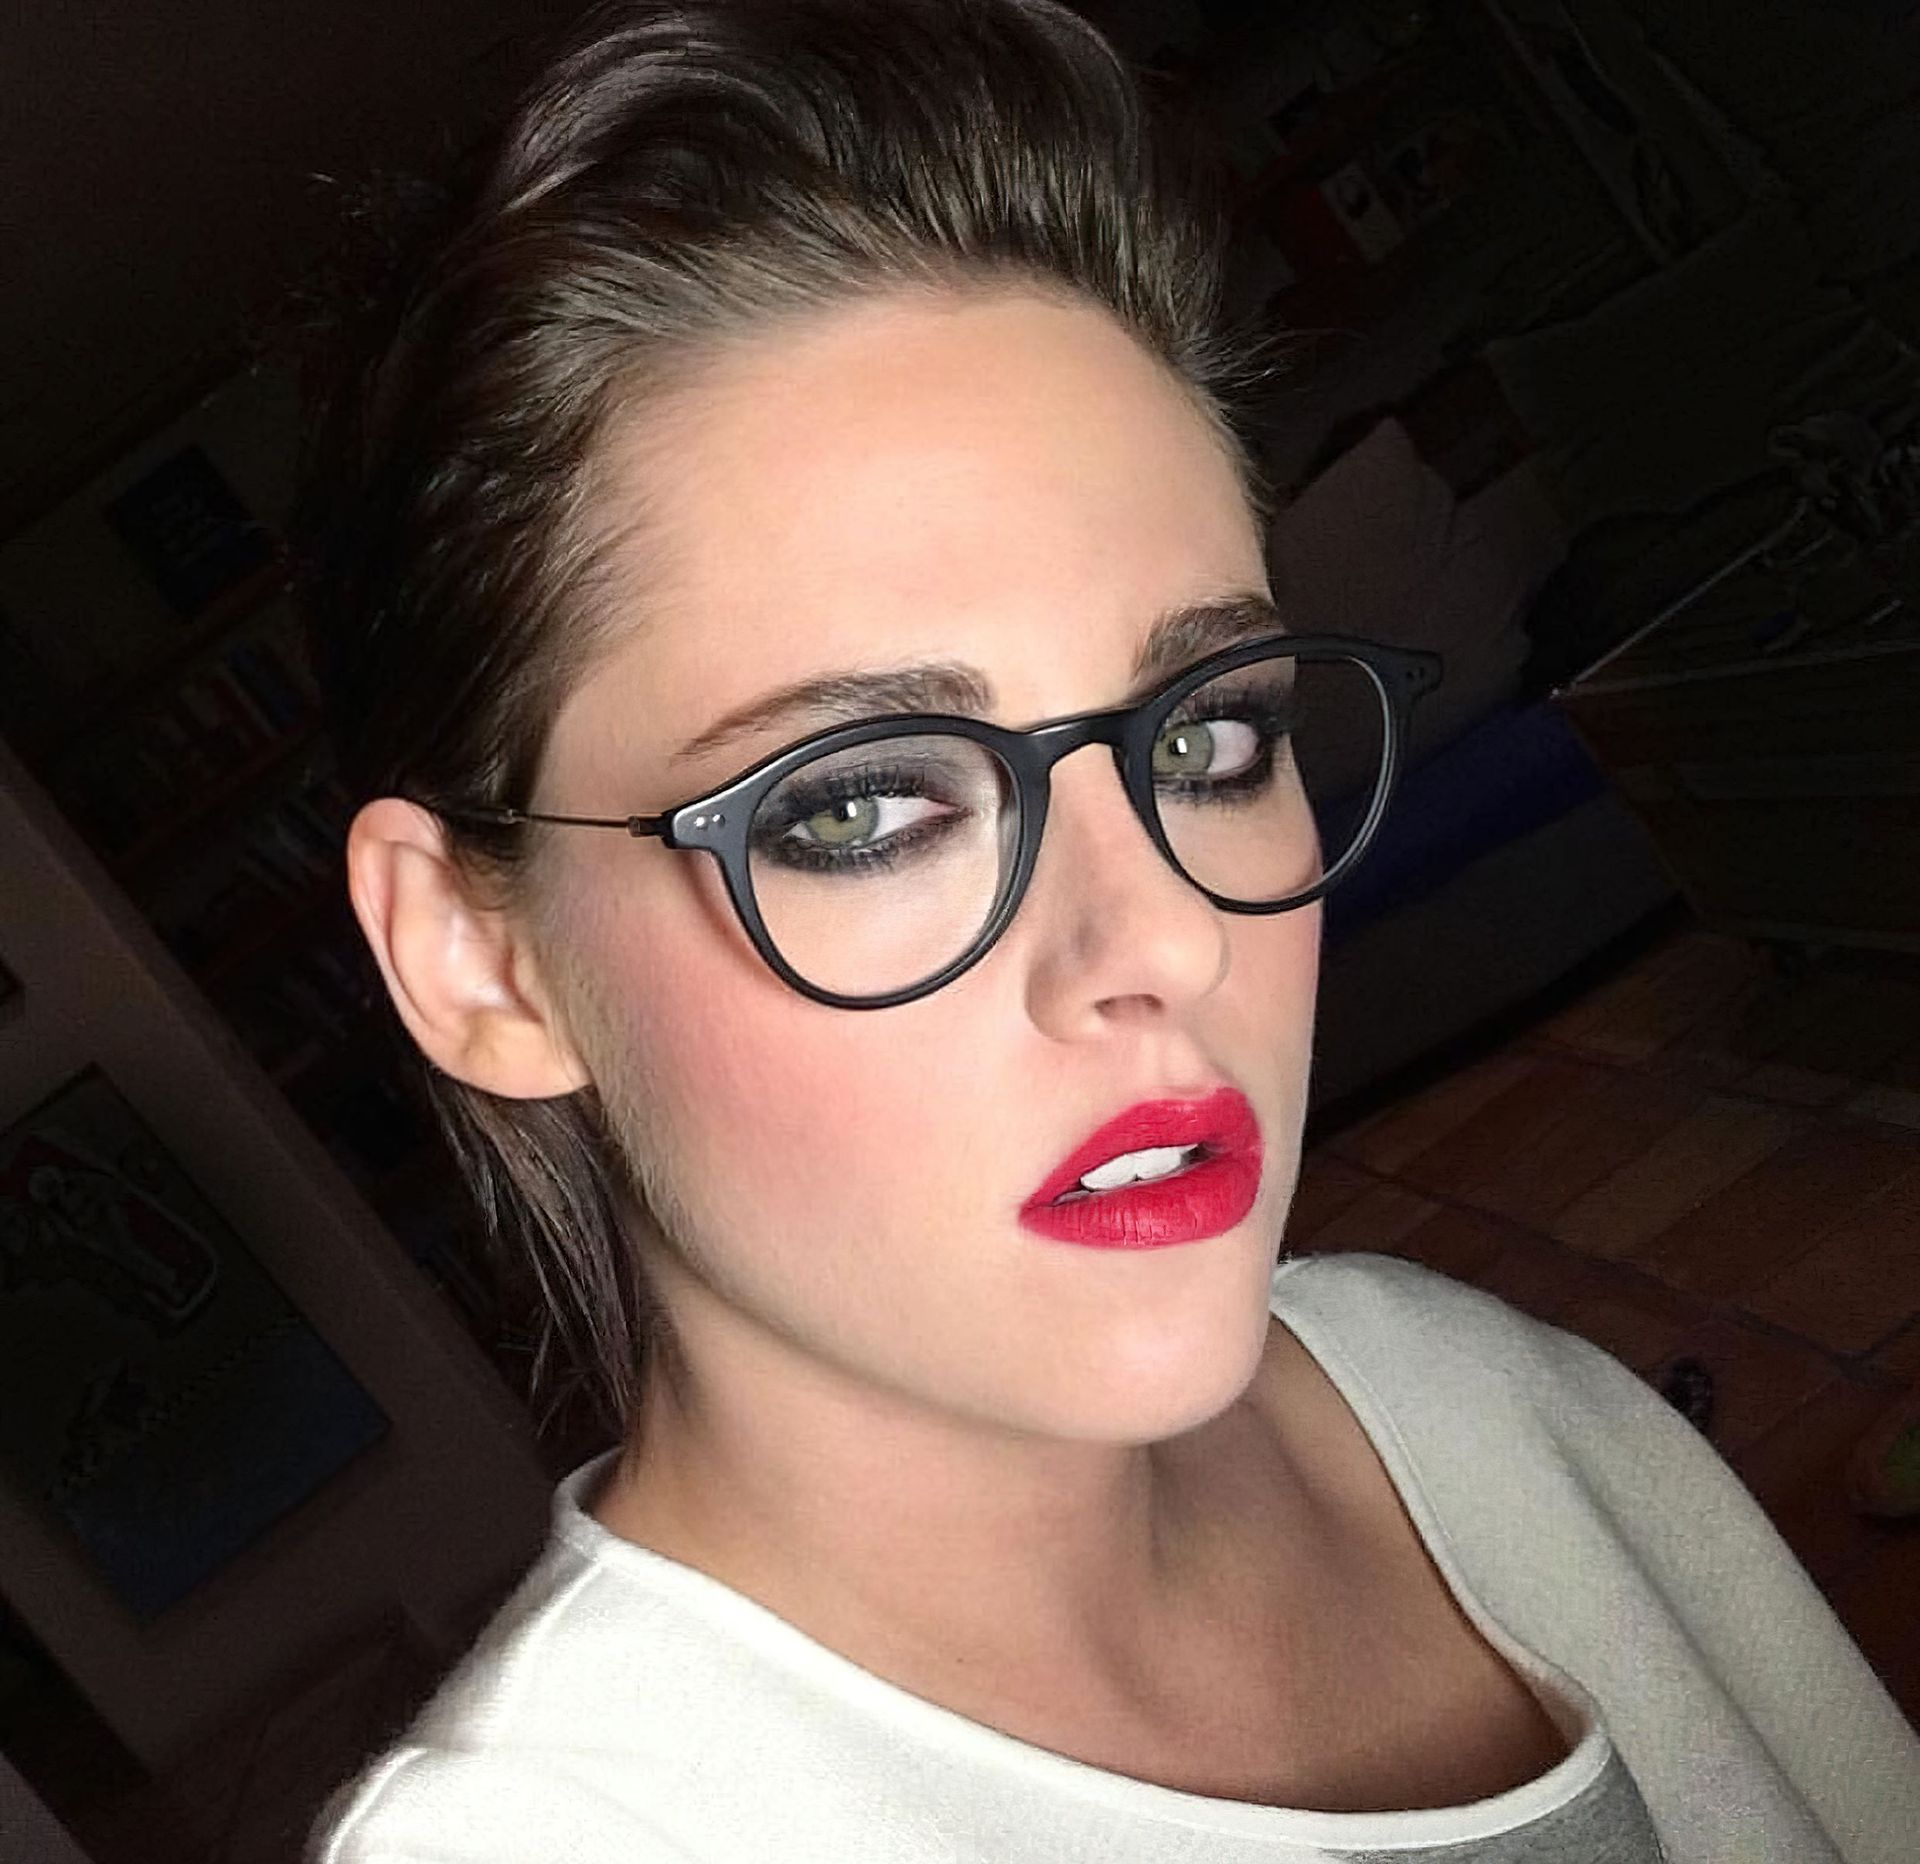 Kristen Stewart Nude Leaked The Fappening Complete Collection 0031